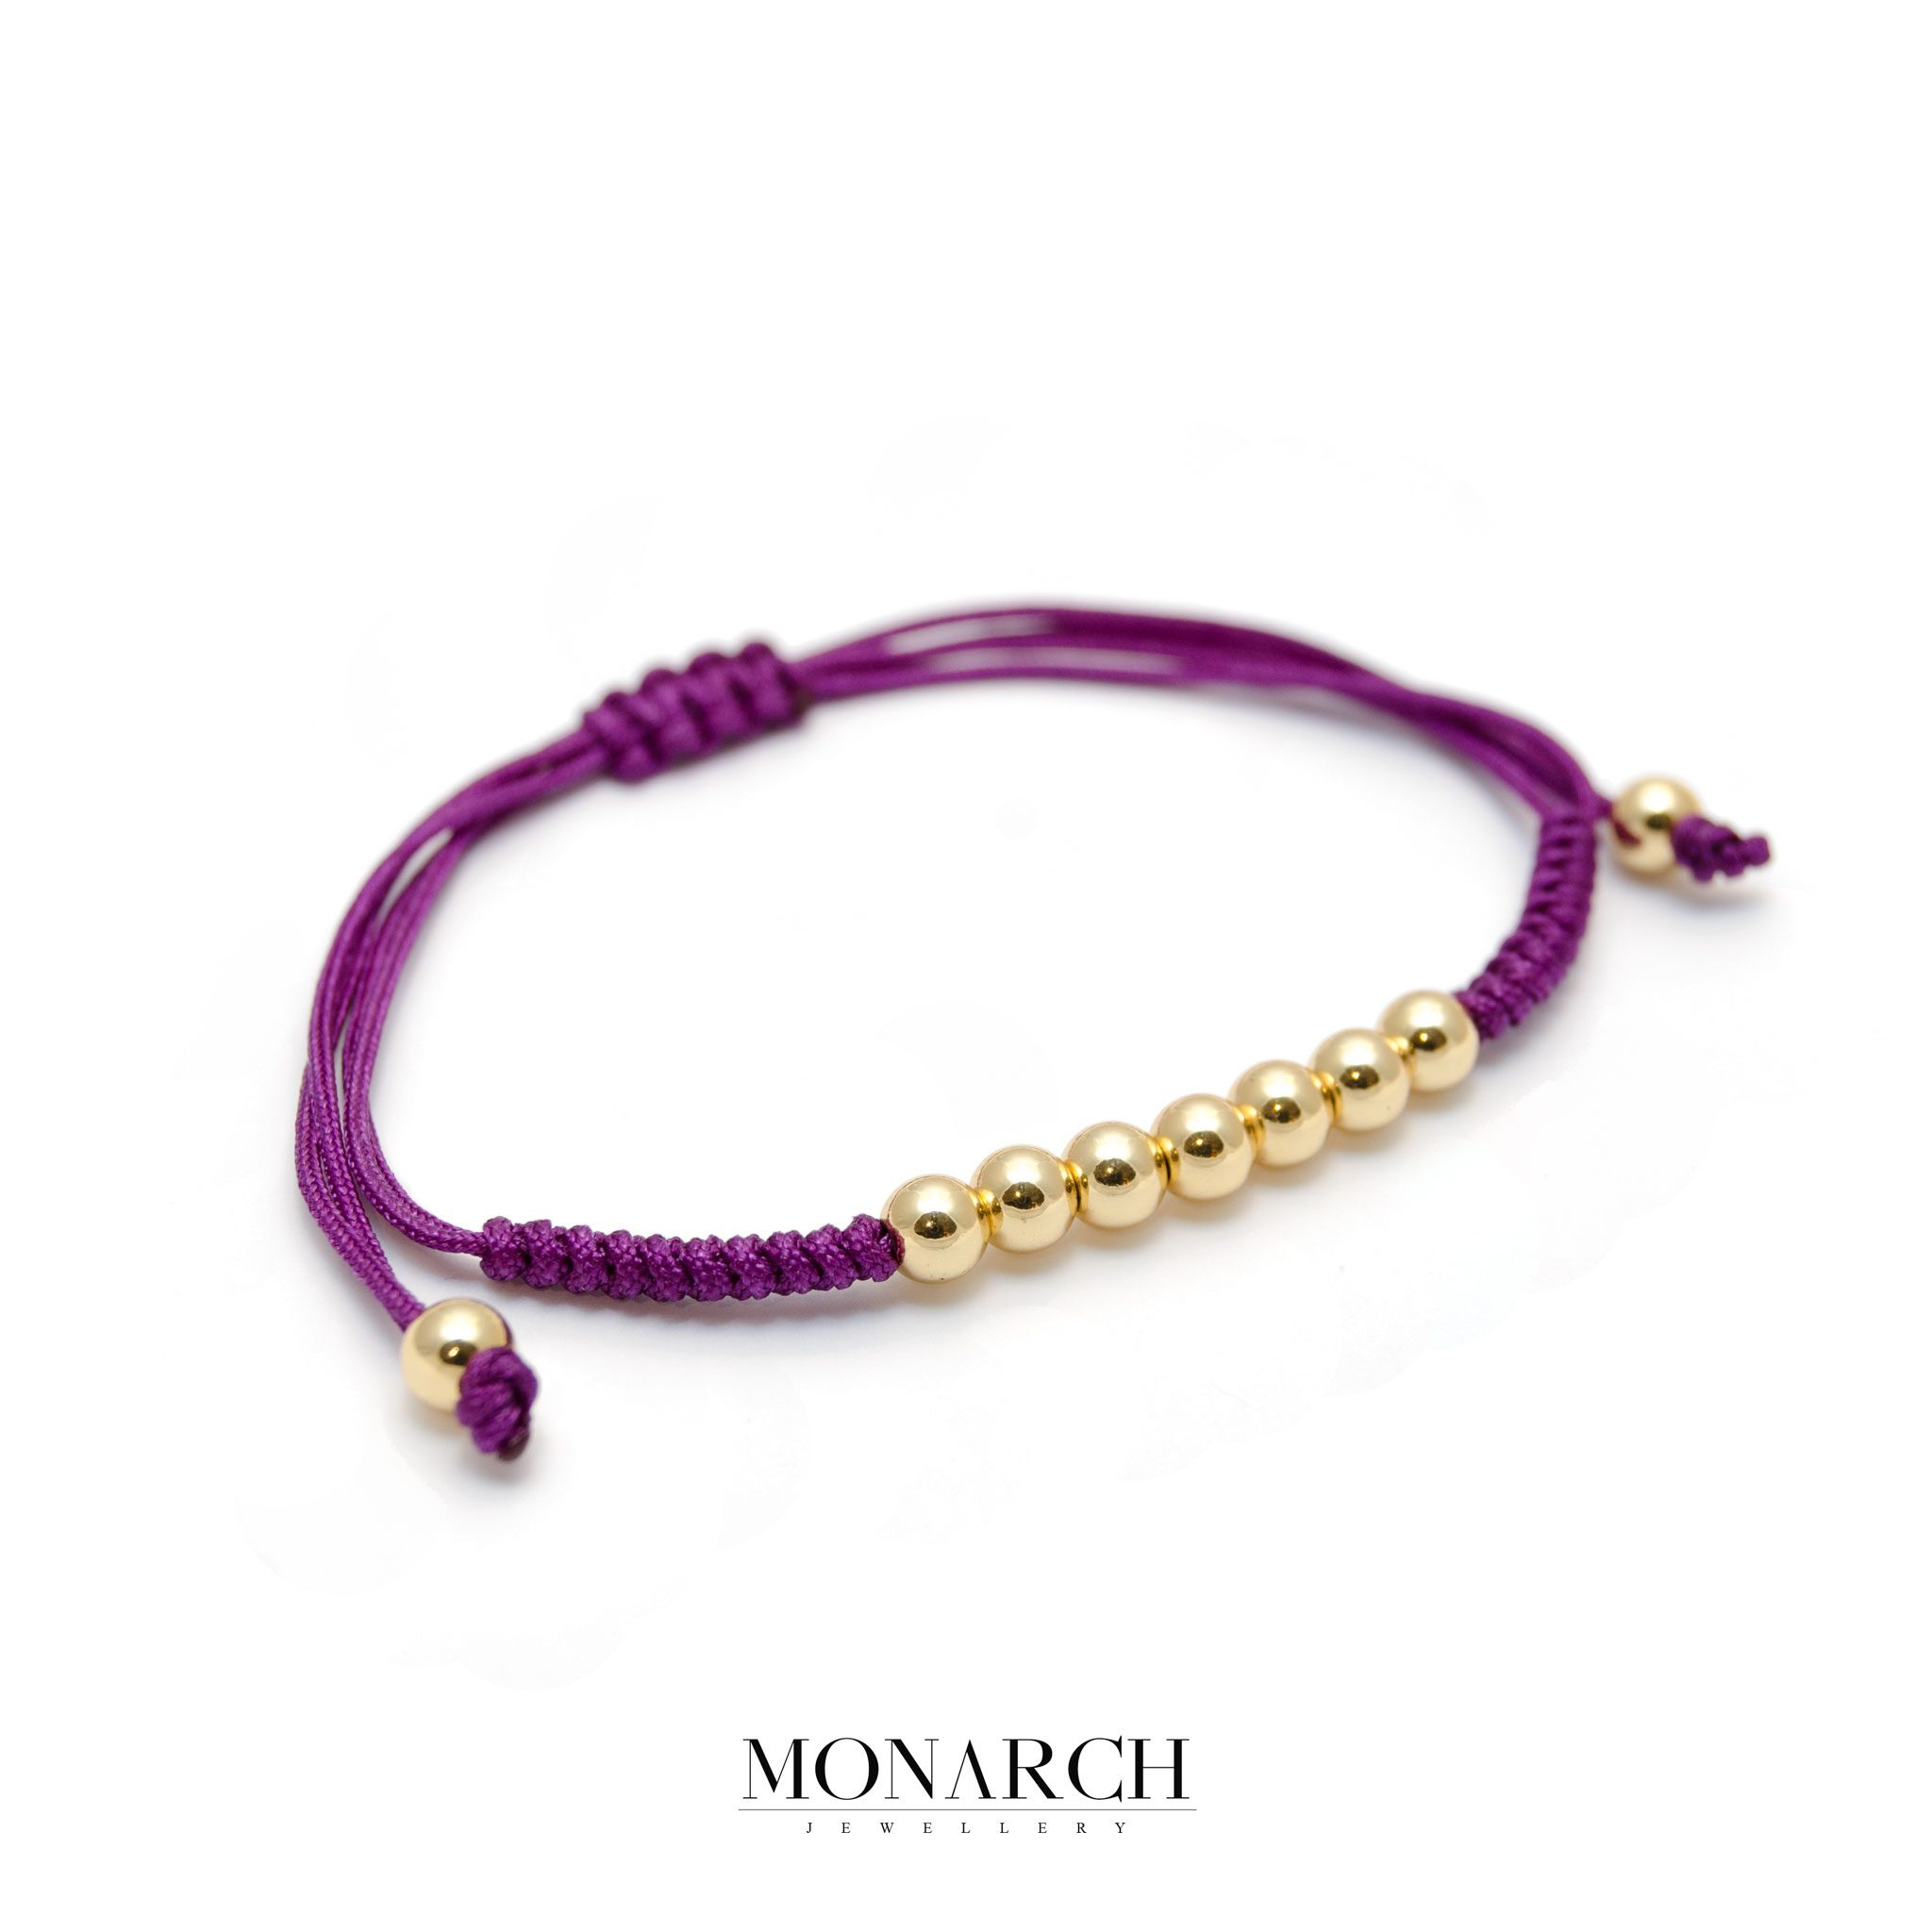 57-Monarch-Jewellery-24k-Gold-Bead-Magenta-Macrame-Bracelet-resized